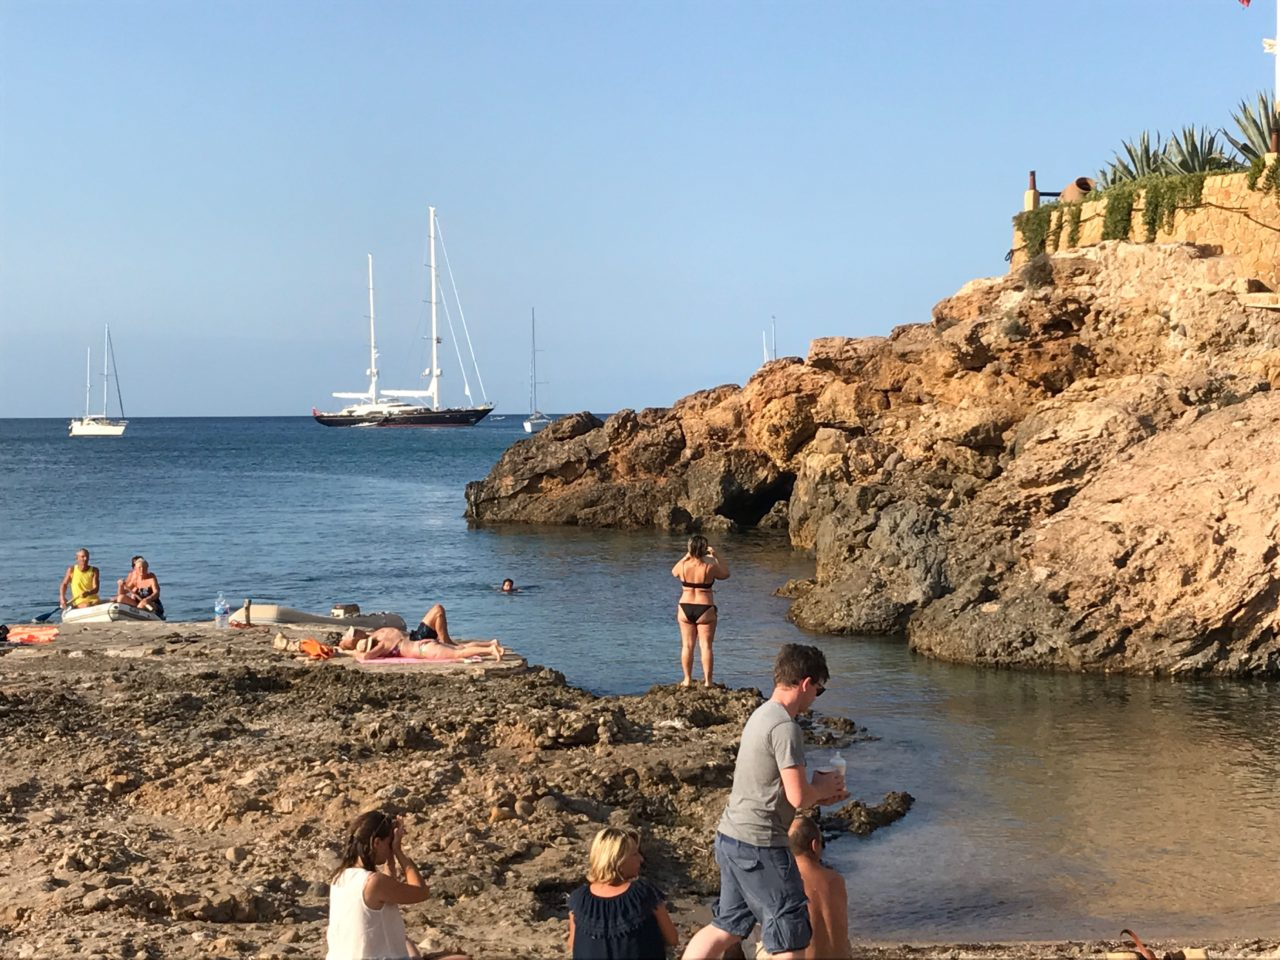 Sunbathers On Cliff With Sail Boats In The Background